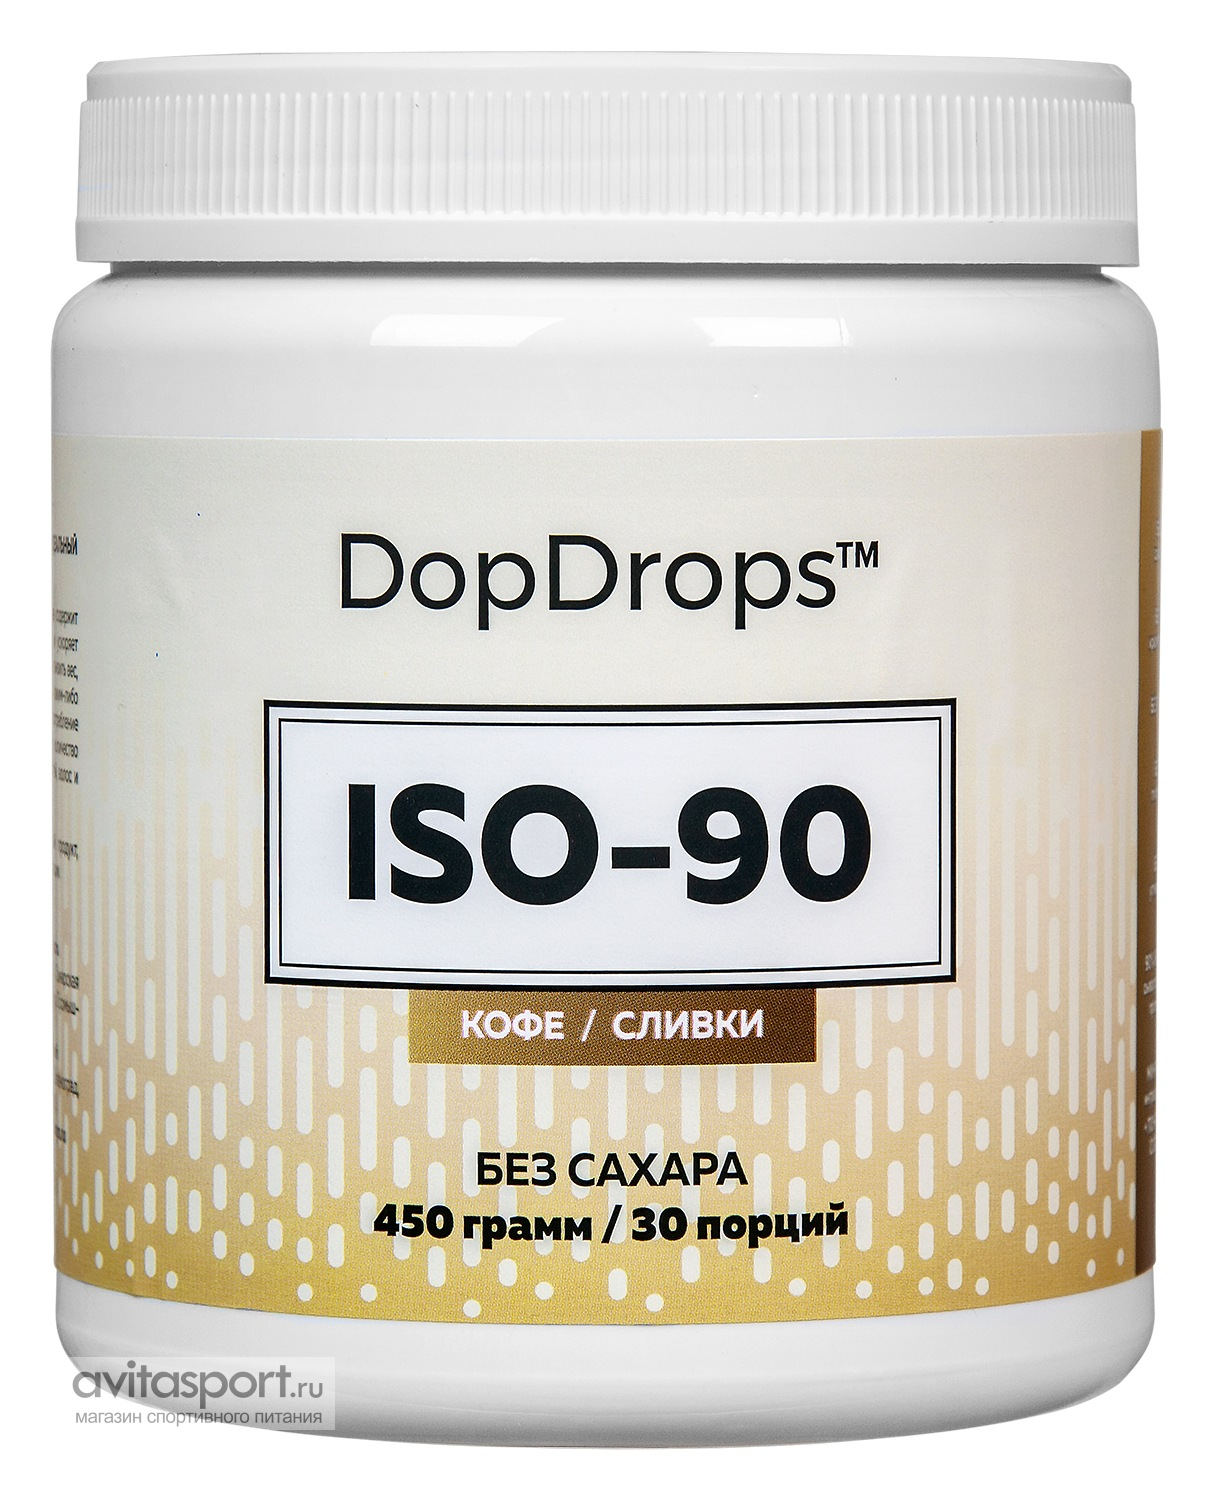 DopDrops ISO-90 450 г